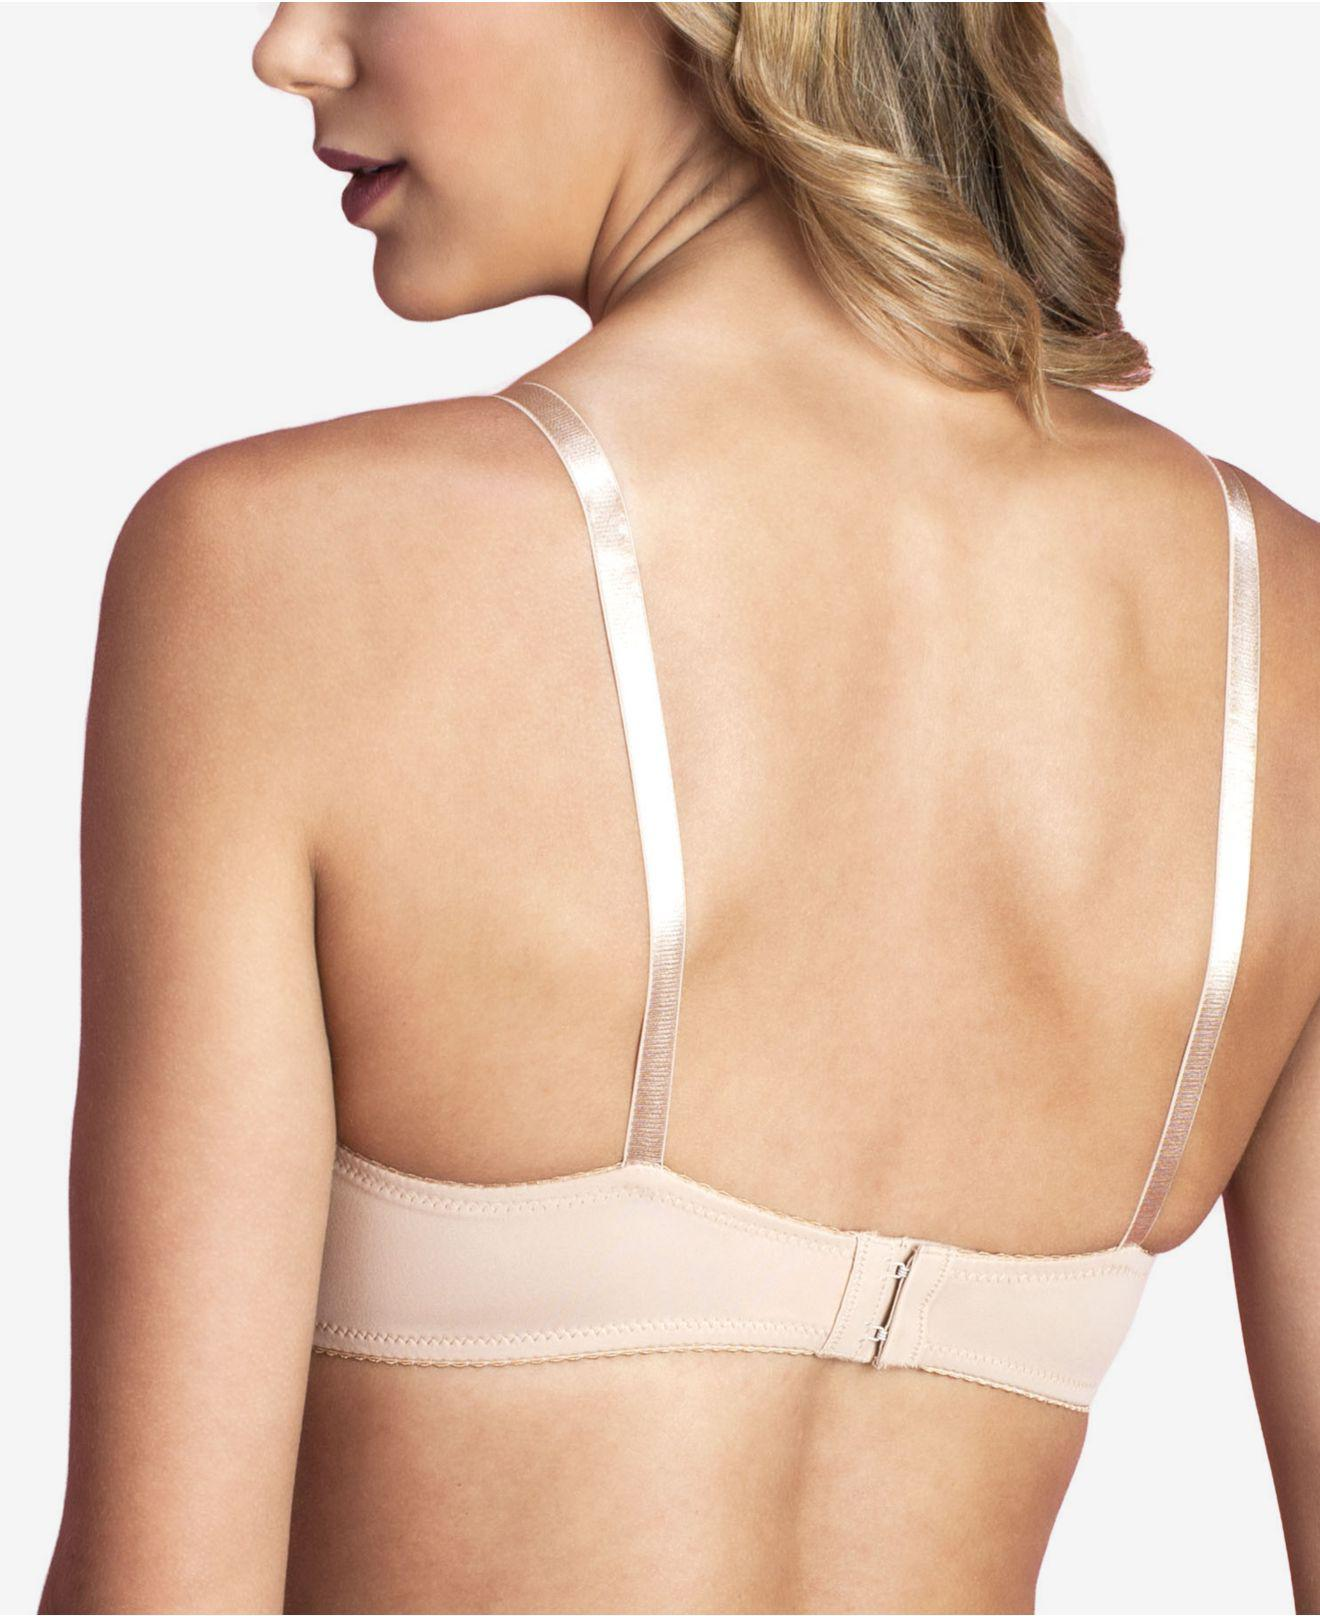 4596b67efbca3 Fashion Forms Original Smooth Water Push-up Bra® Mc690 in Natural - Lyst